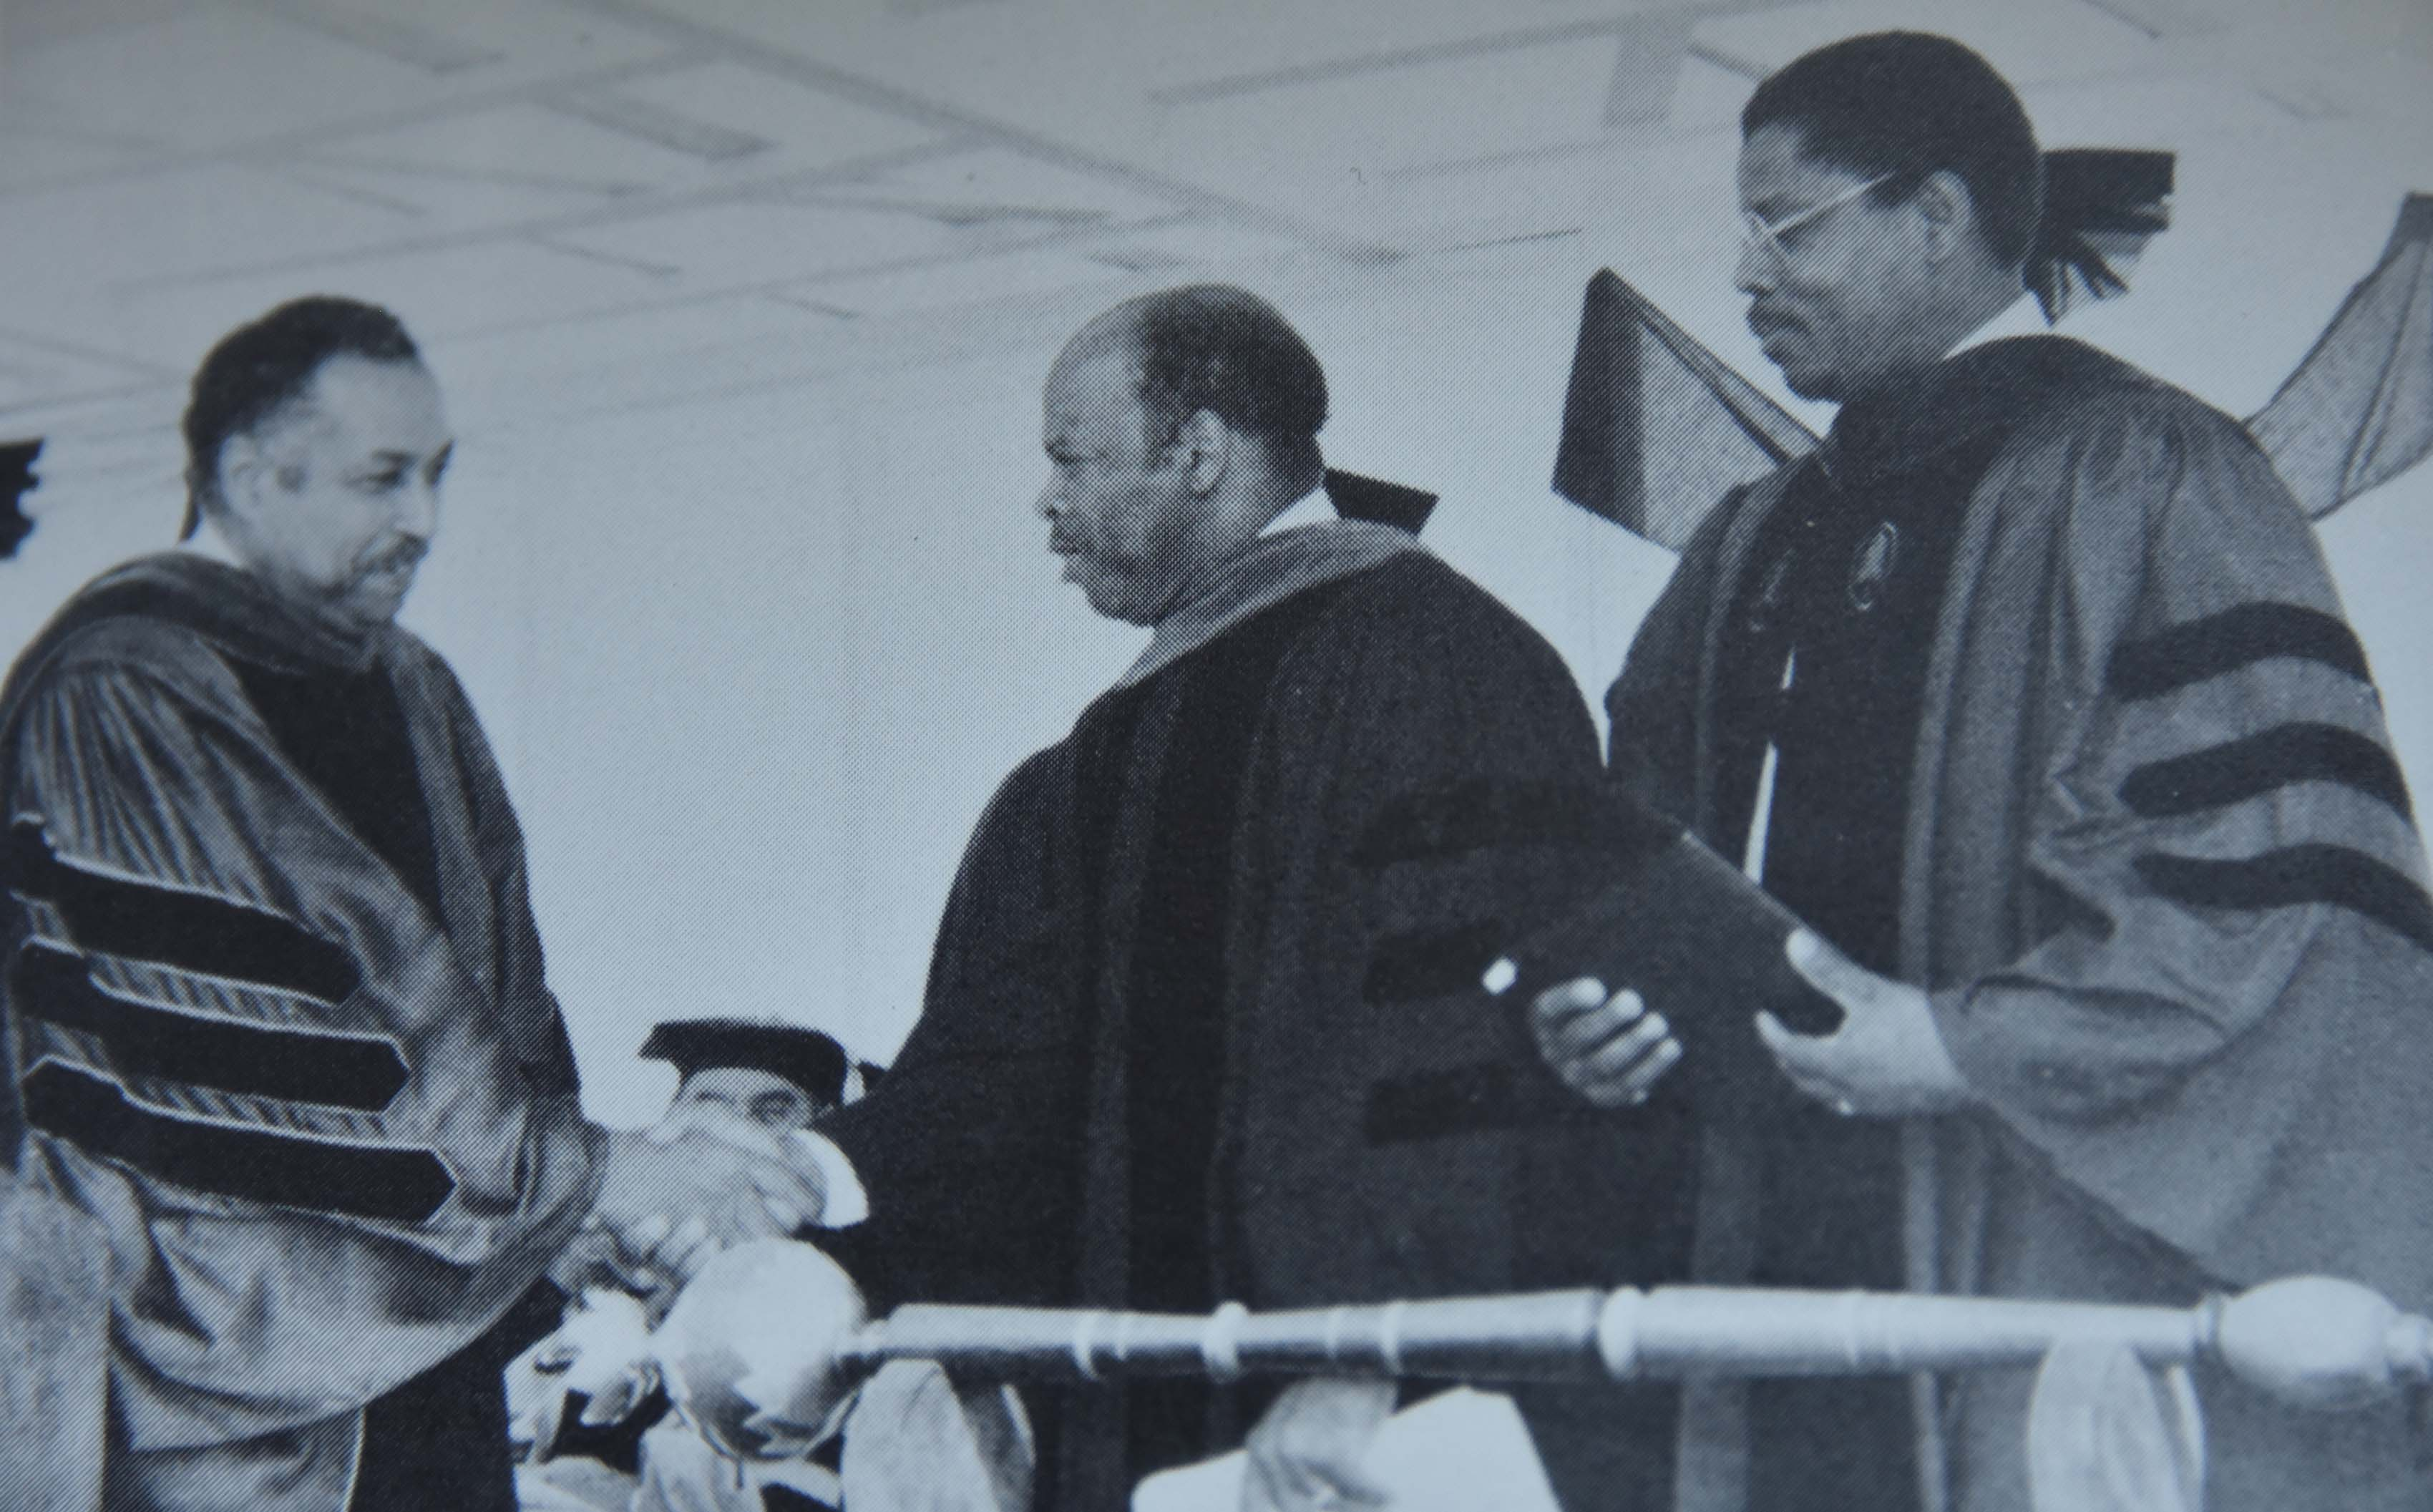 Congressman John R. Lewis -- shown shaking hands with Del State President William B. DeLauder with then-interim Vice President of Academic Affairs, Dr. Henry Tisdale looking on -- was the keynote speaker at Delaware State College's 1988 Commencement Ceremony.